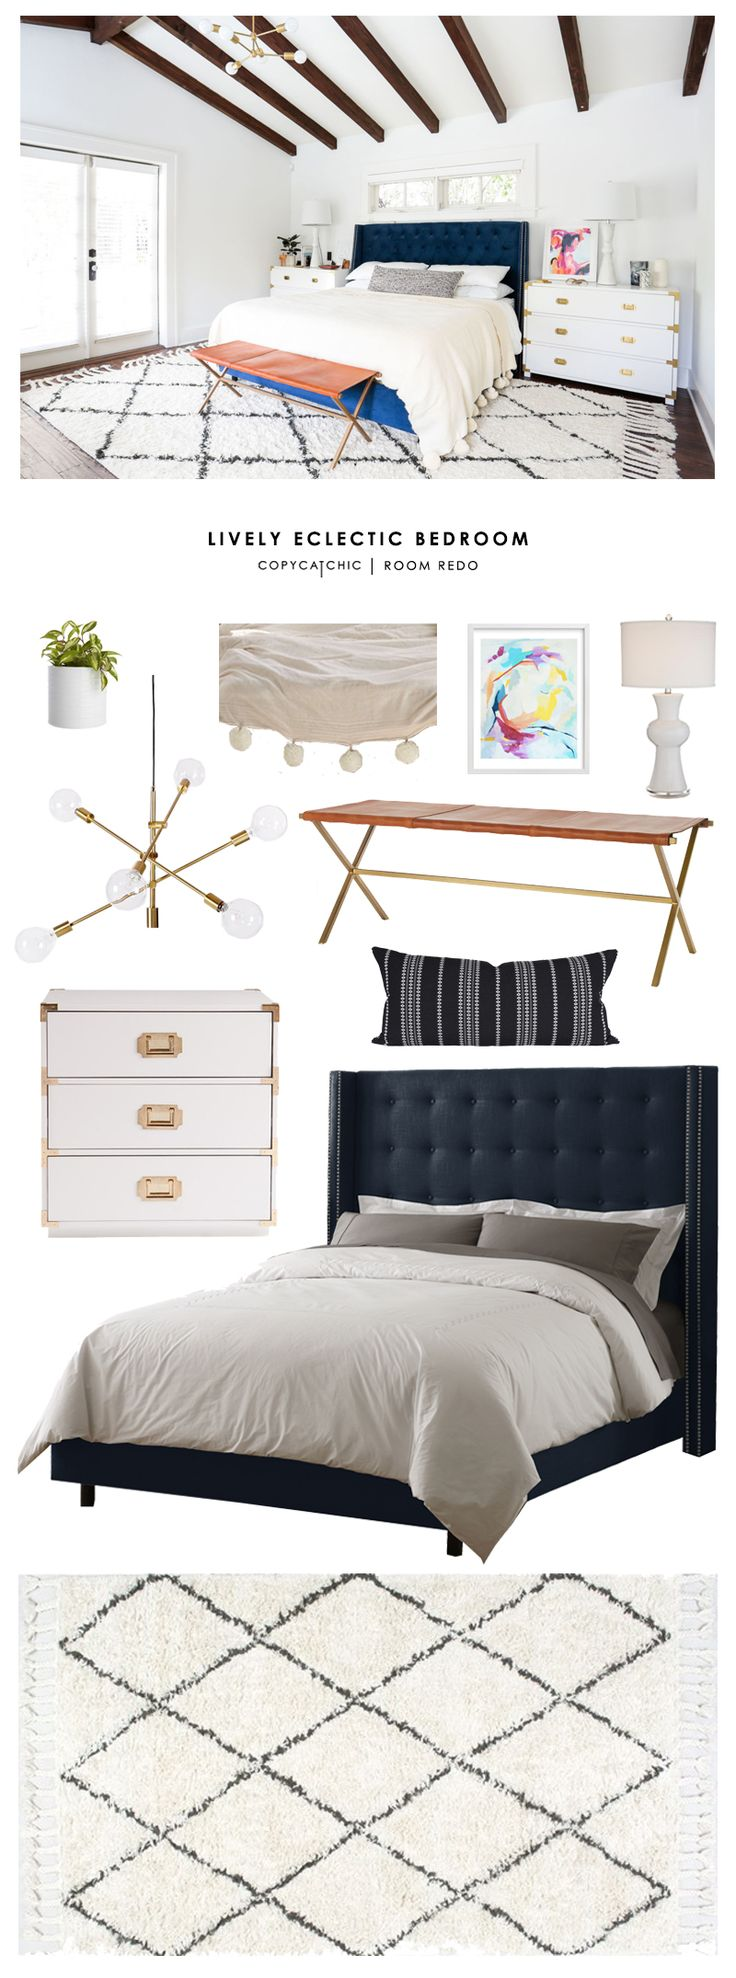 Copy Cat Chic Room Redo | Lively Eclectic Bedroom | Copy Cat Chic | Bloglovin'